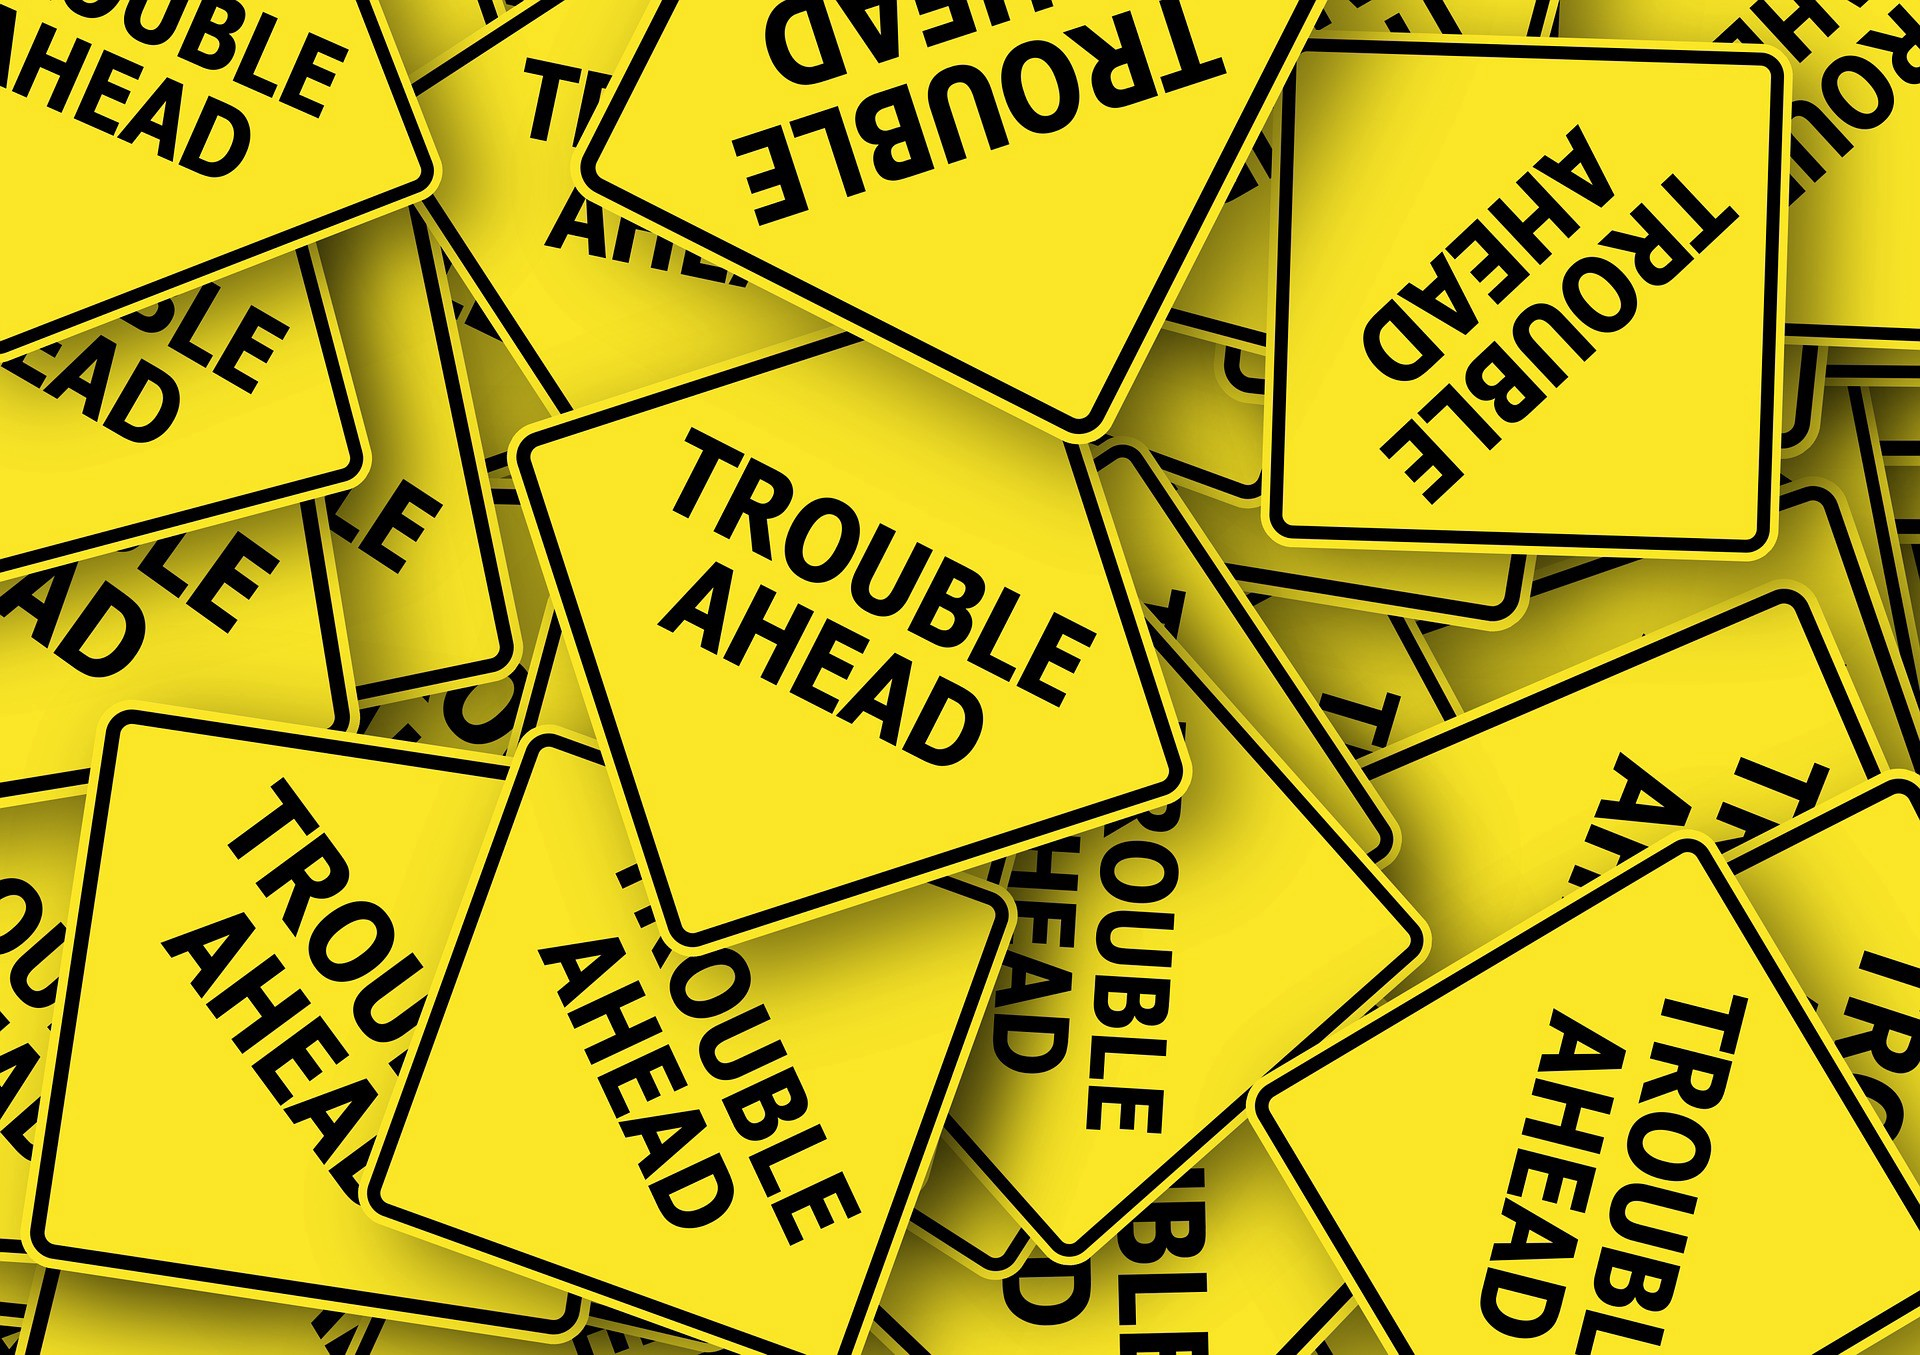 Yellow signs saying Trouble Ahead